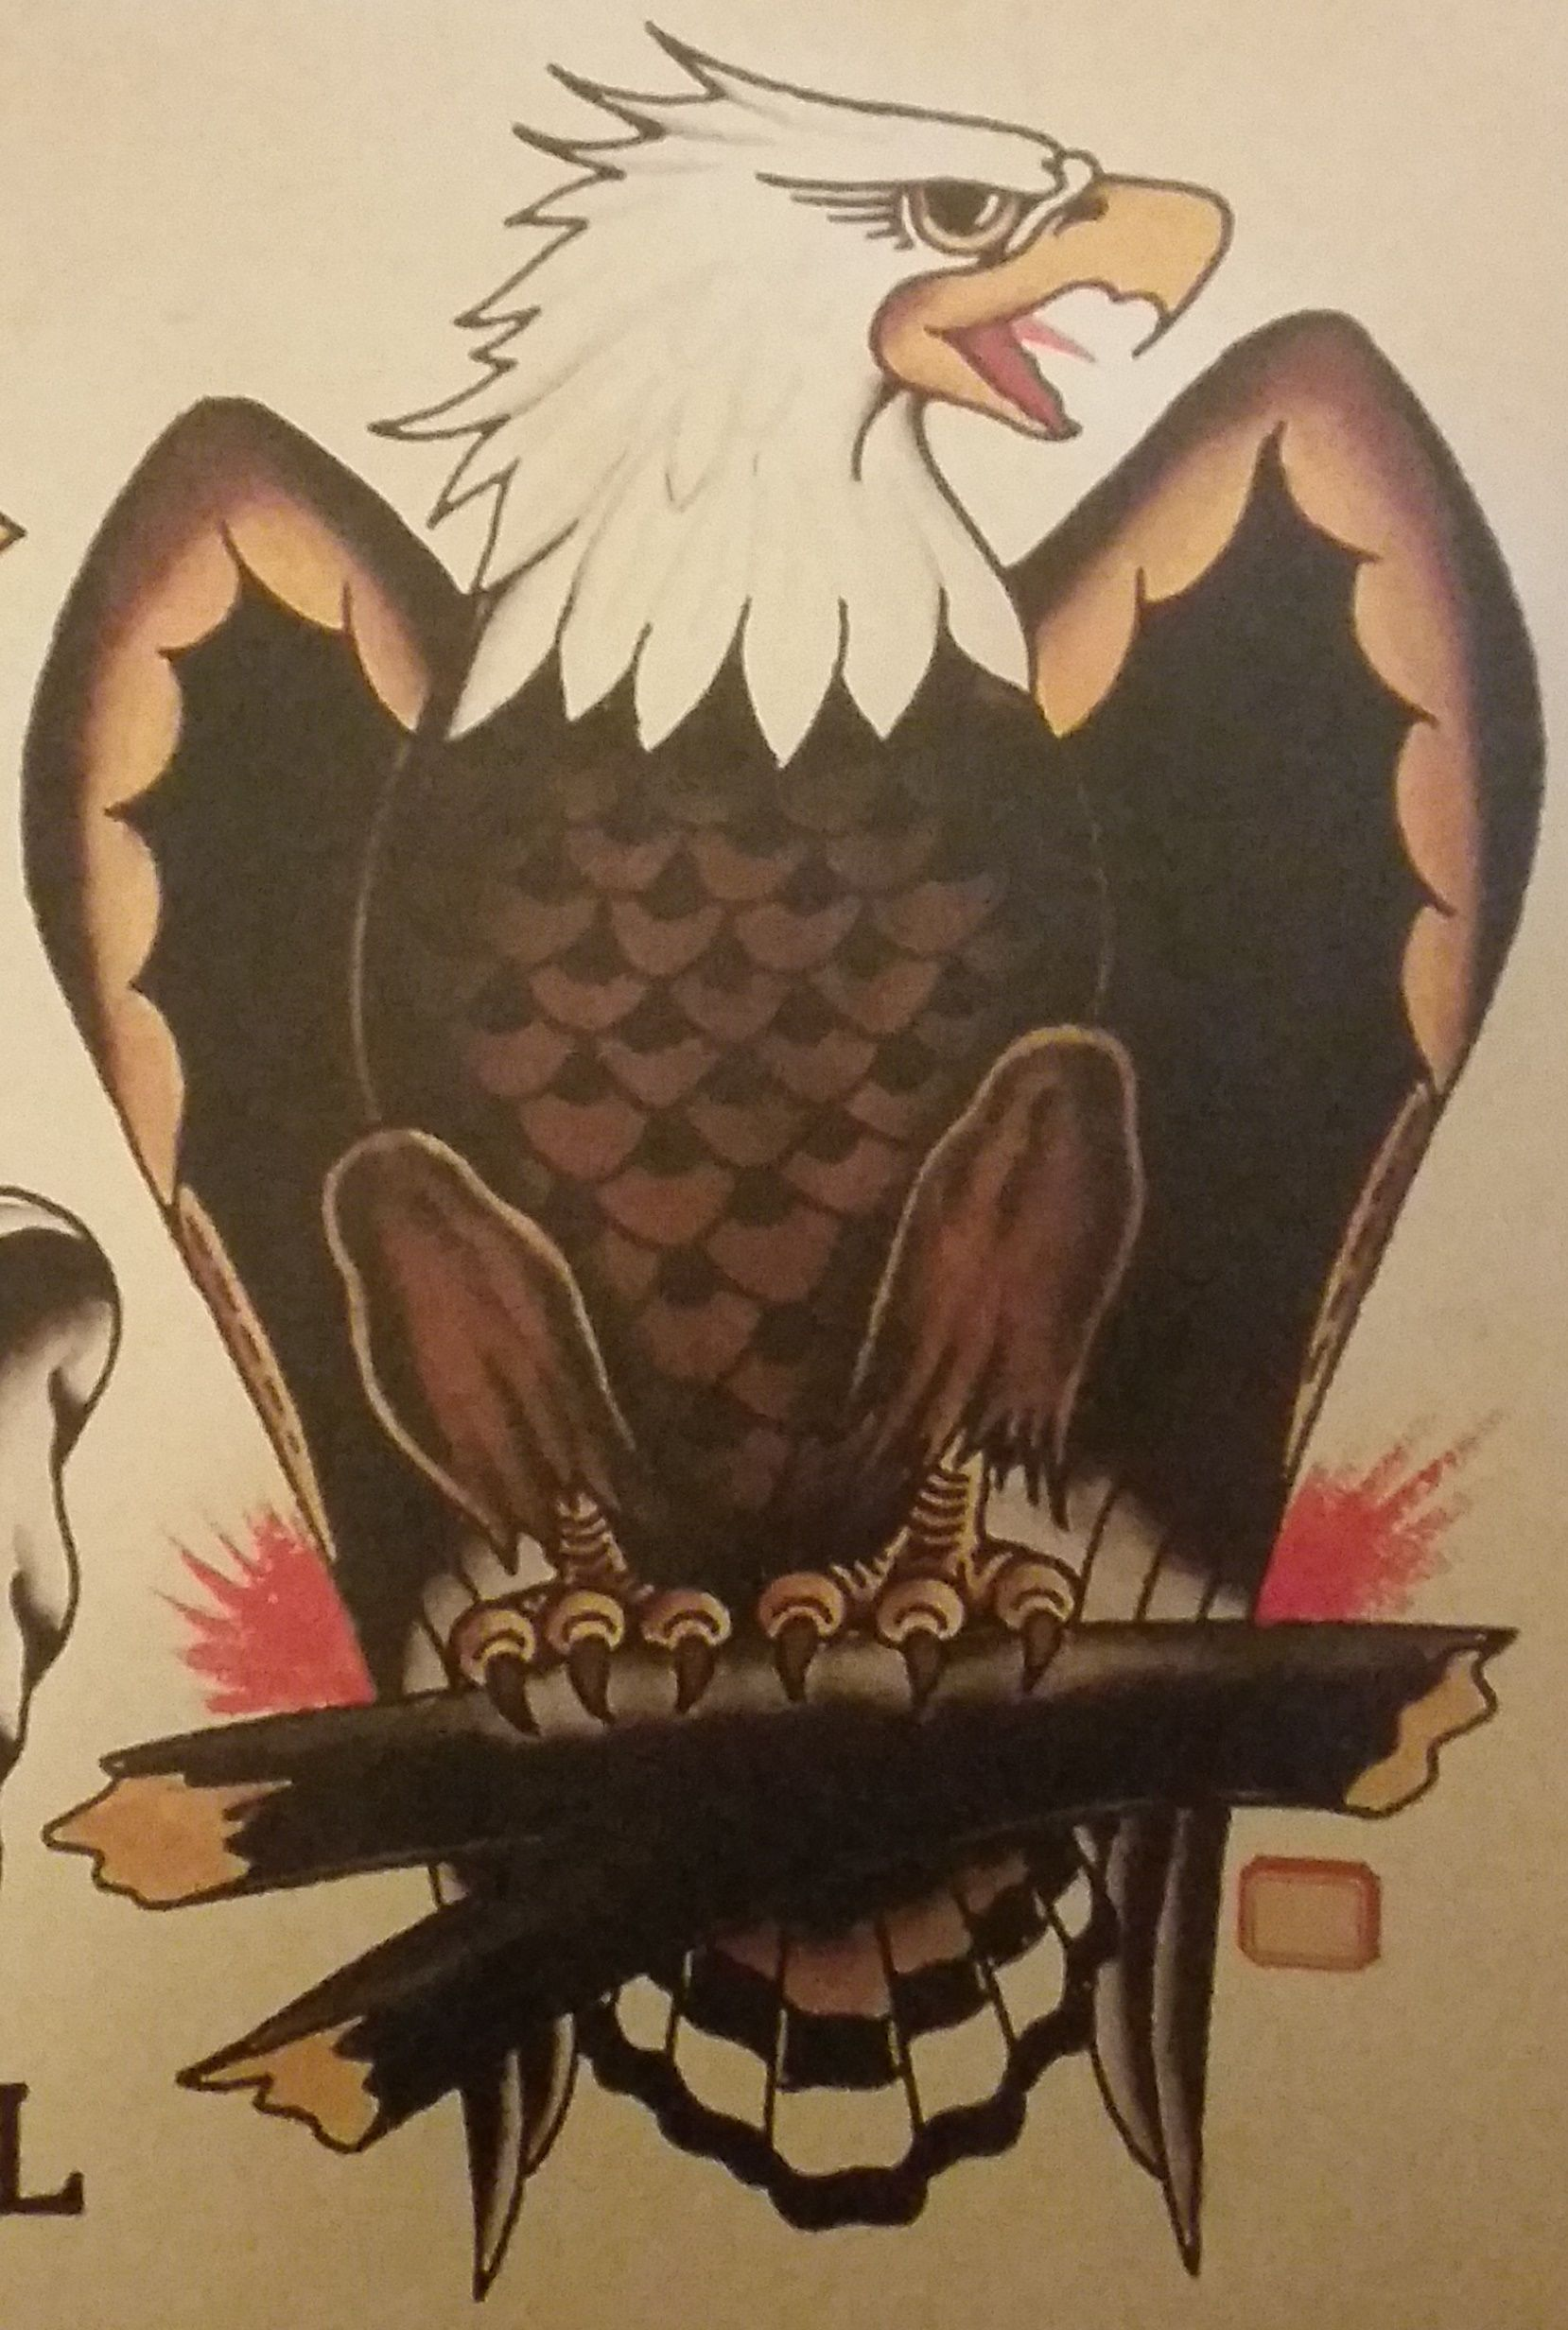 American eagle tattoos high quality photos and flash - Traditional Old School Tattoo Sailor Jerry Eagle Bird